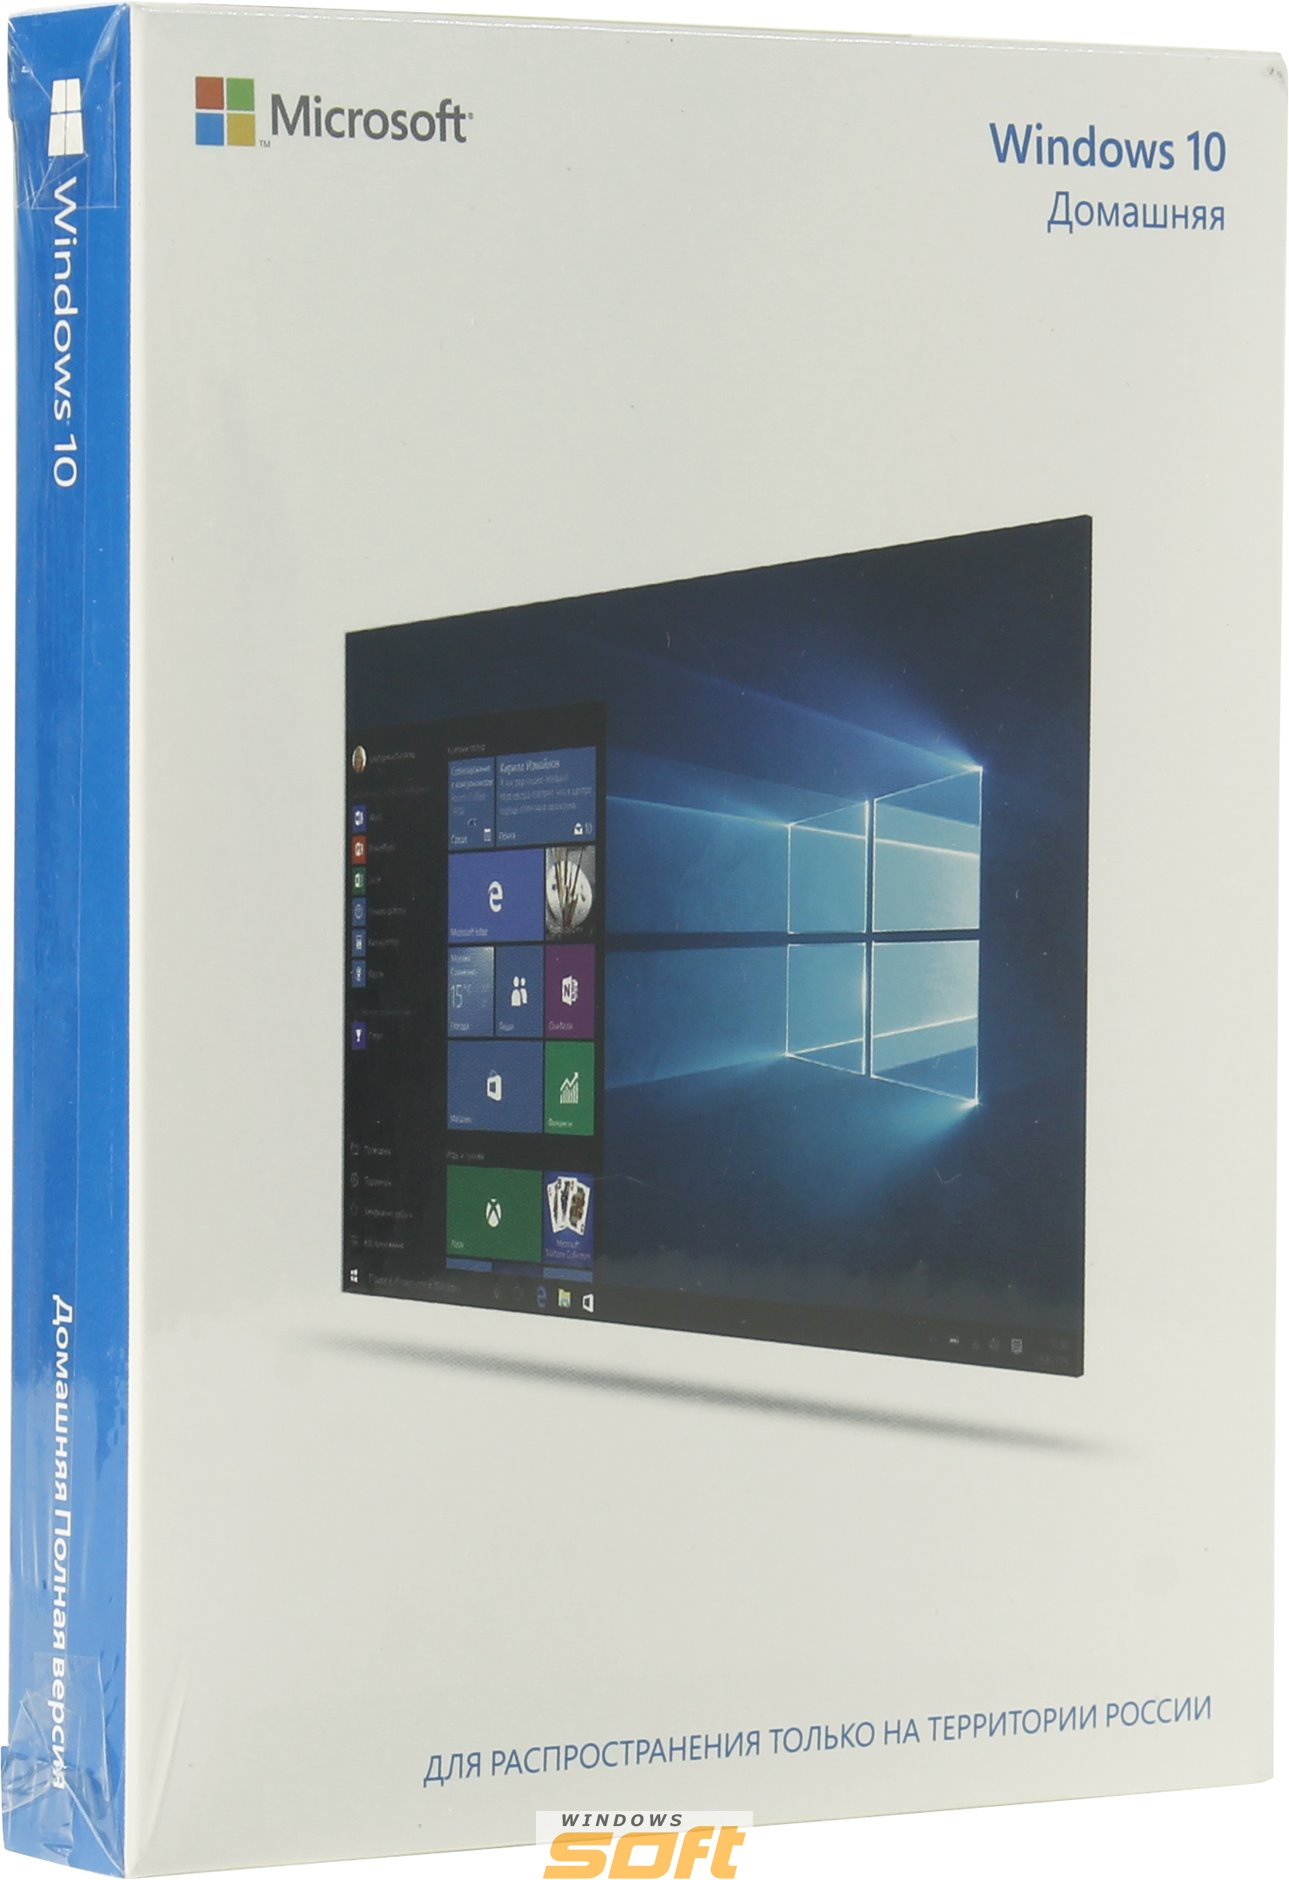 Купить Microsoft Windows Home 10 32-bit/64-bit Russian Russia Only USB KW9-00253 по доступной цене